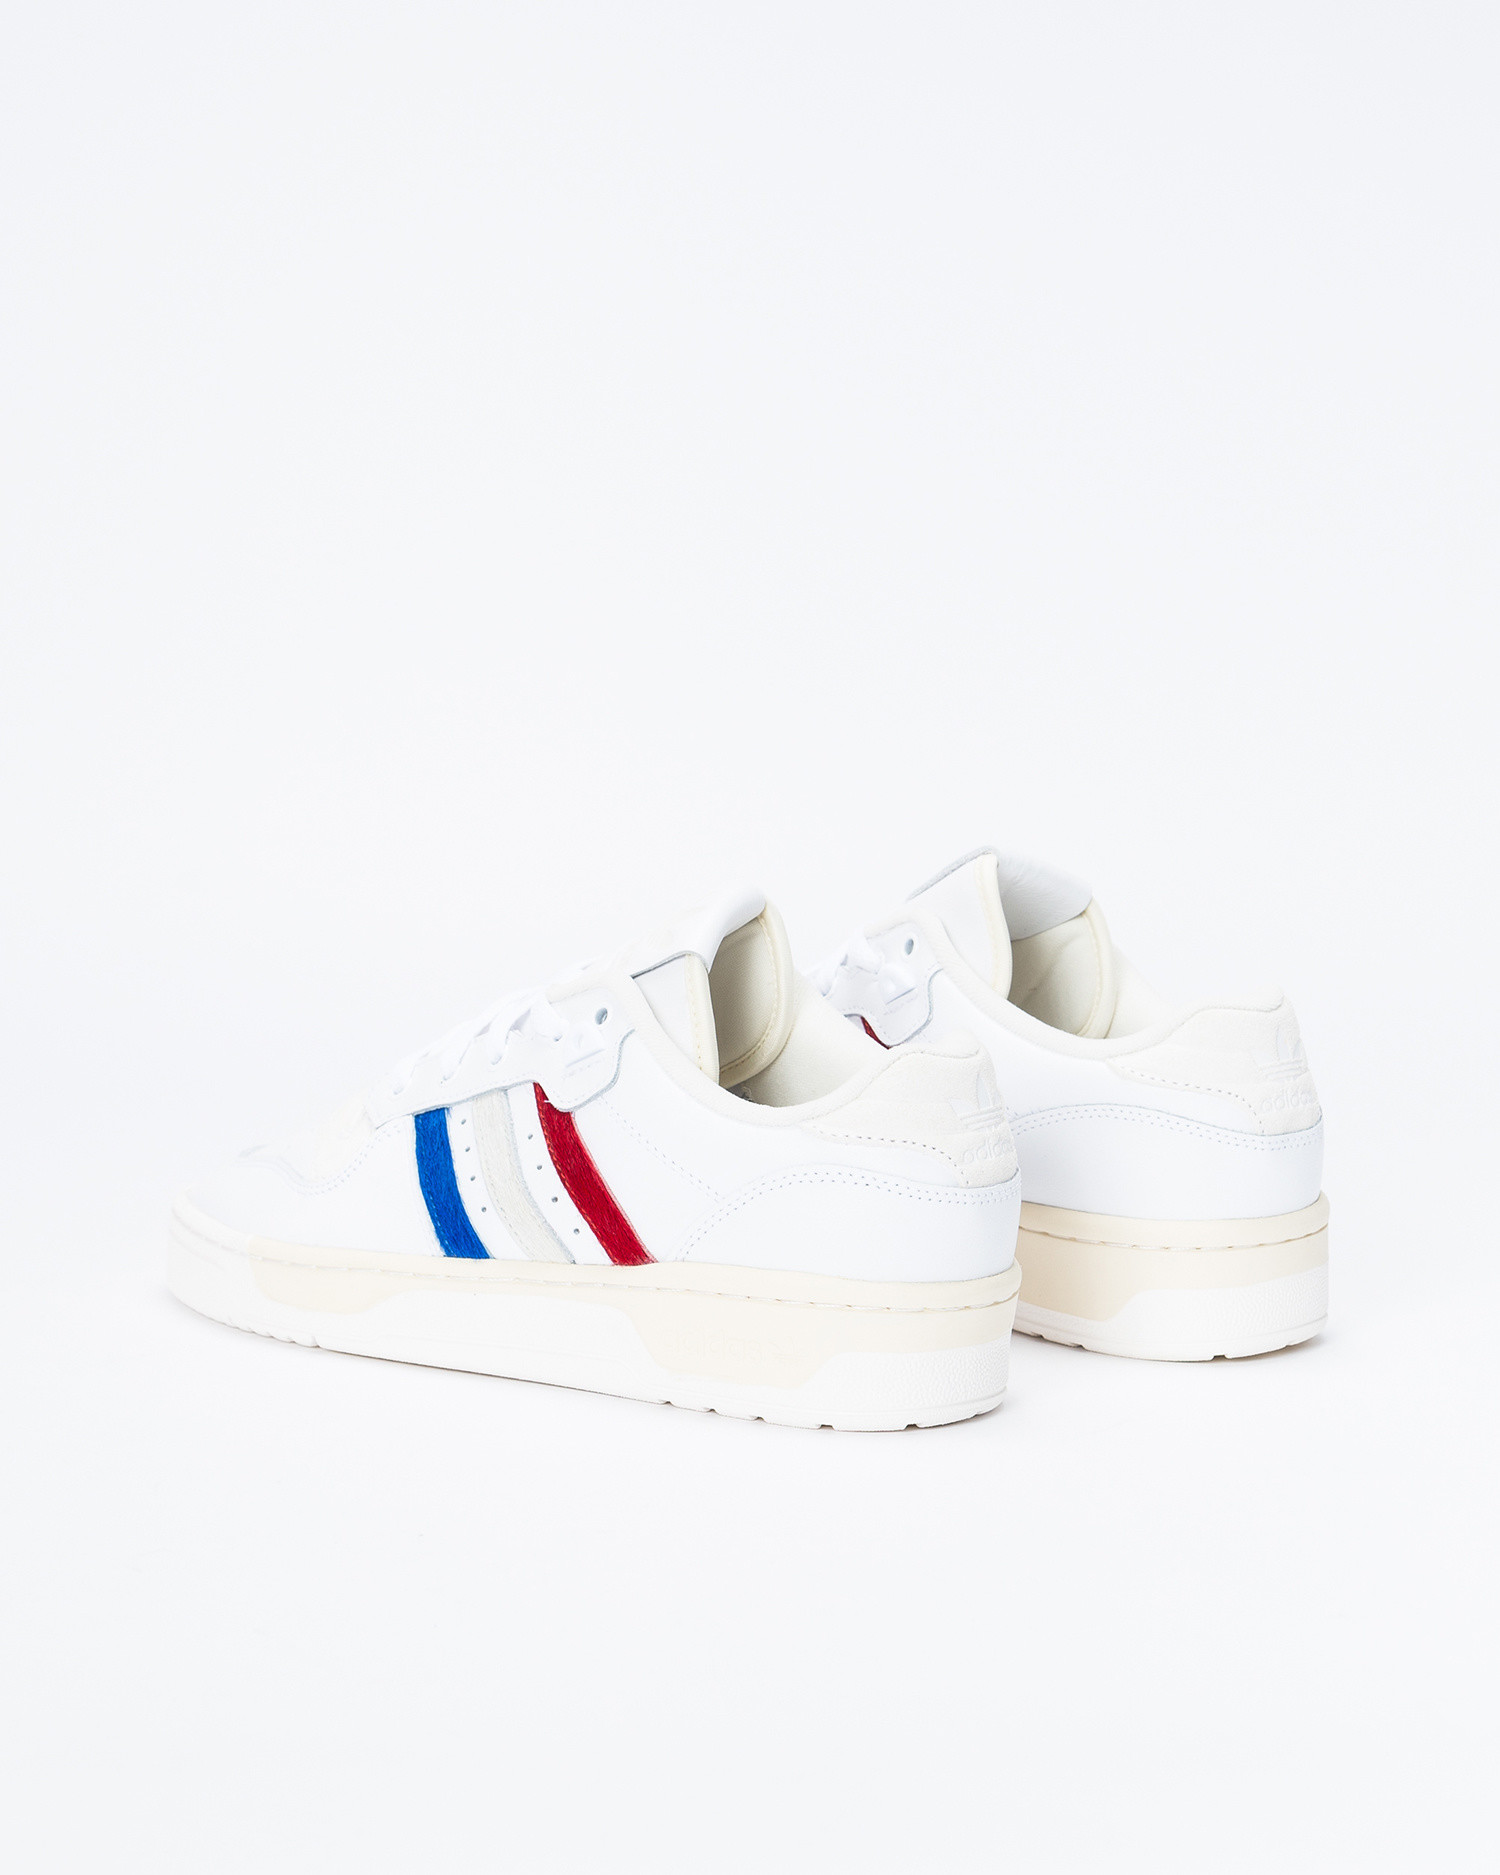 Adidas Rivalry Low Low Ftwwht/Cwhite/Clowhi